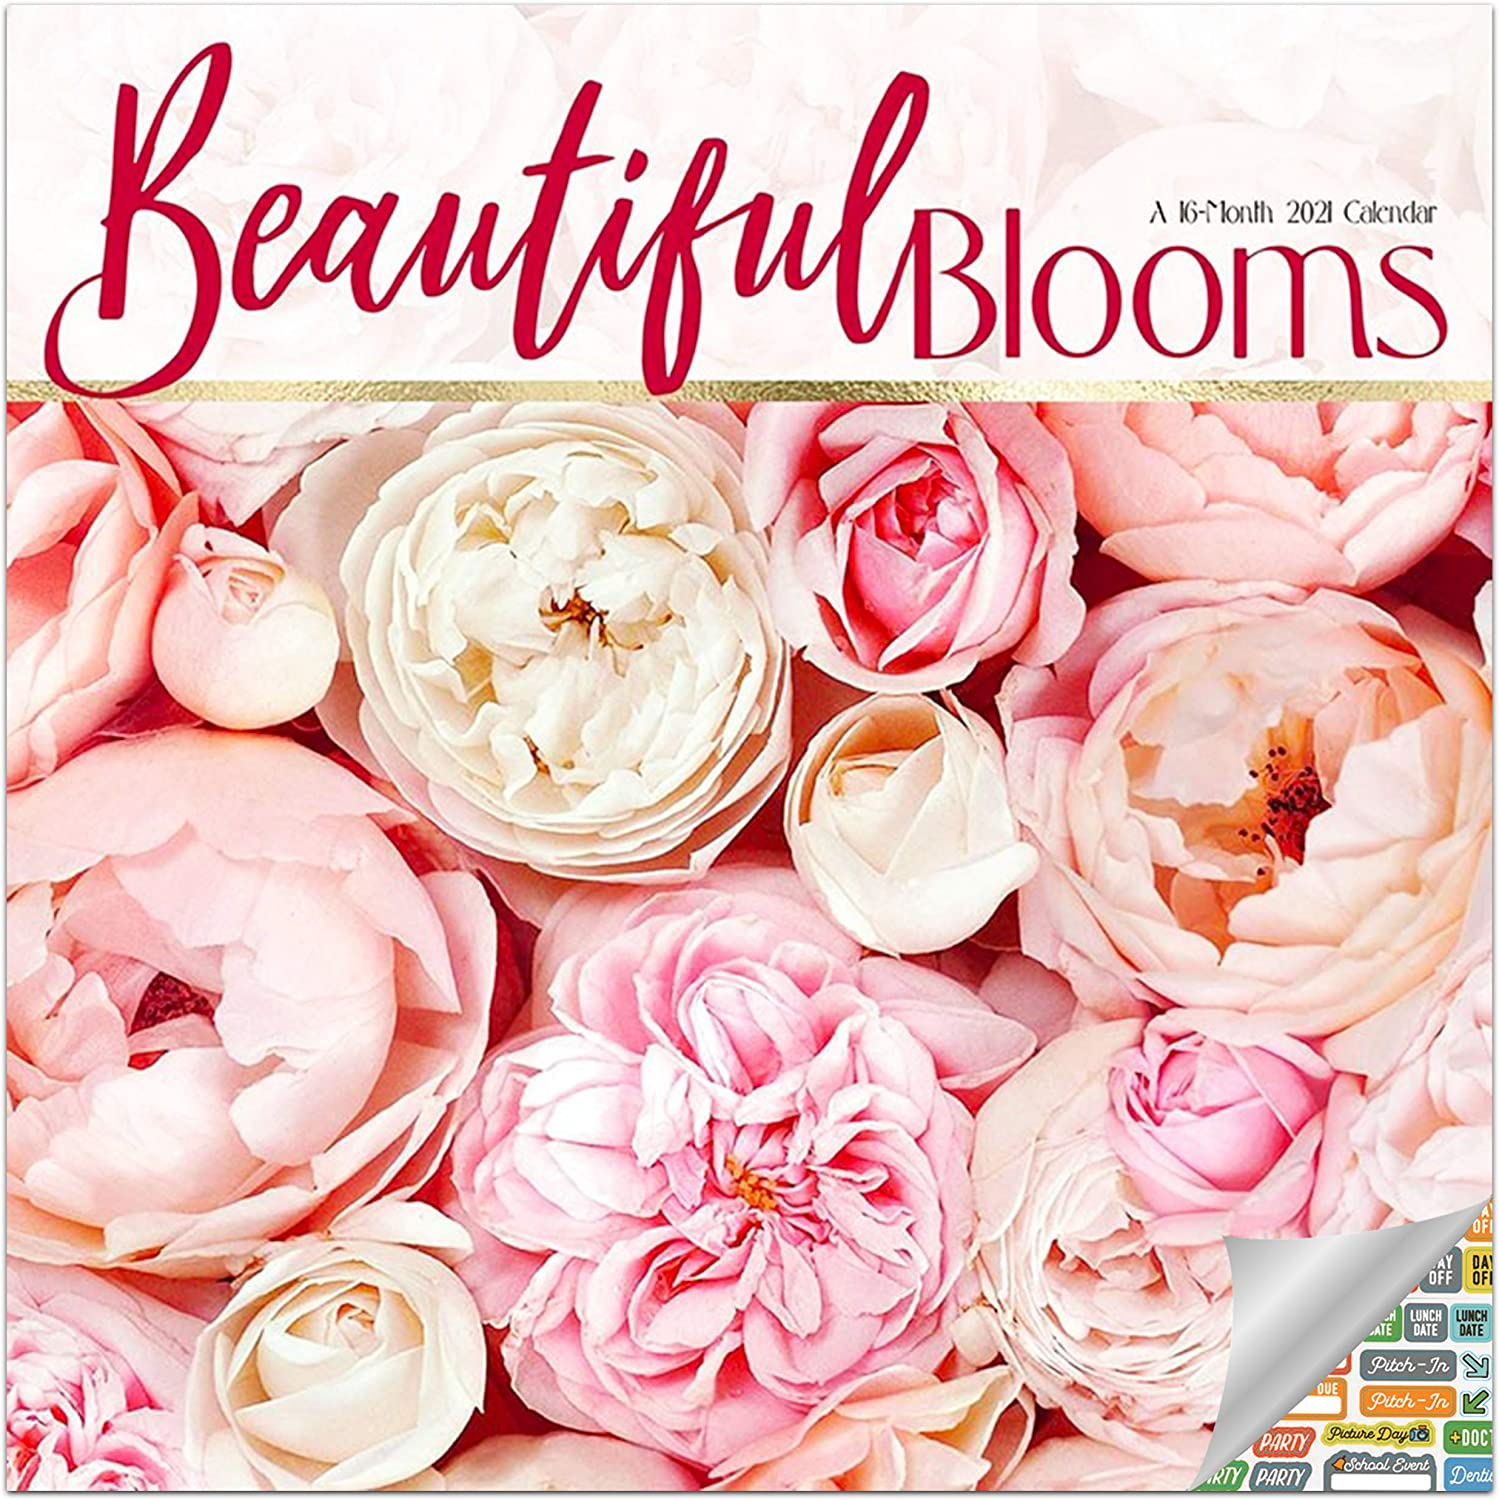 Beautiful Blooms Calendar 2021 Bundle - Deluxe 2021 Flower Bouquets Wall Calendar with Over 100 Calendar Stickers (Gardening Gifts, Office Supplies)